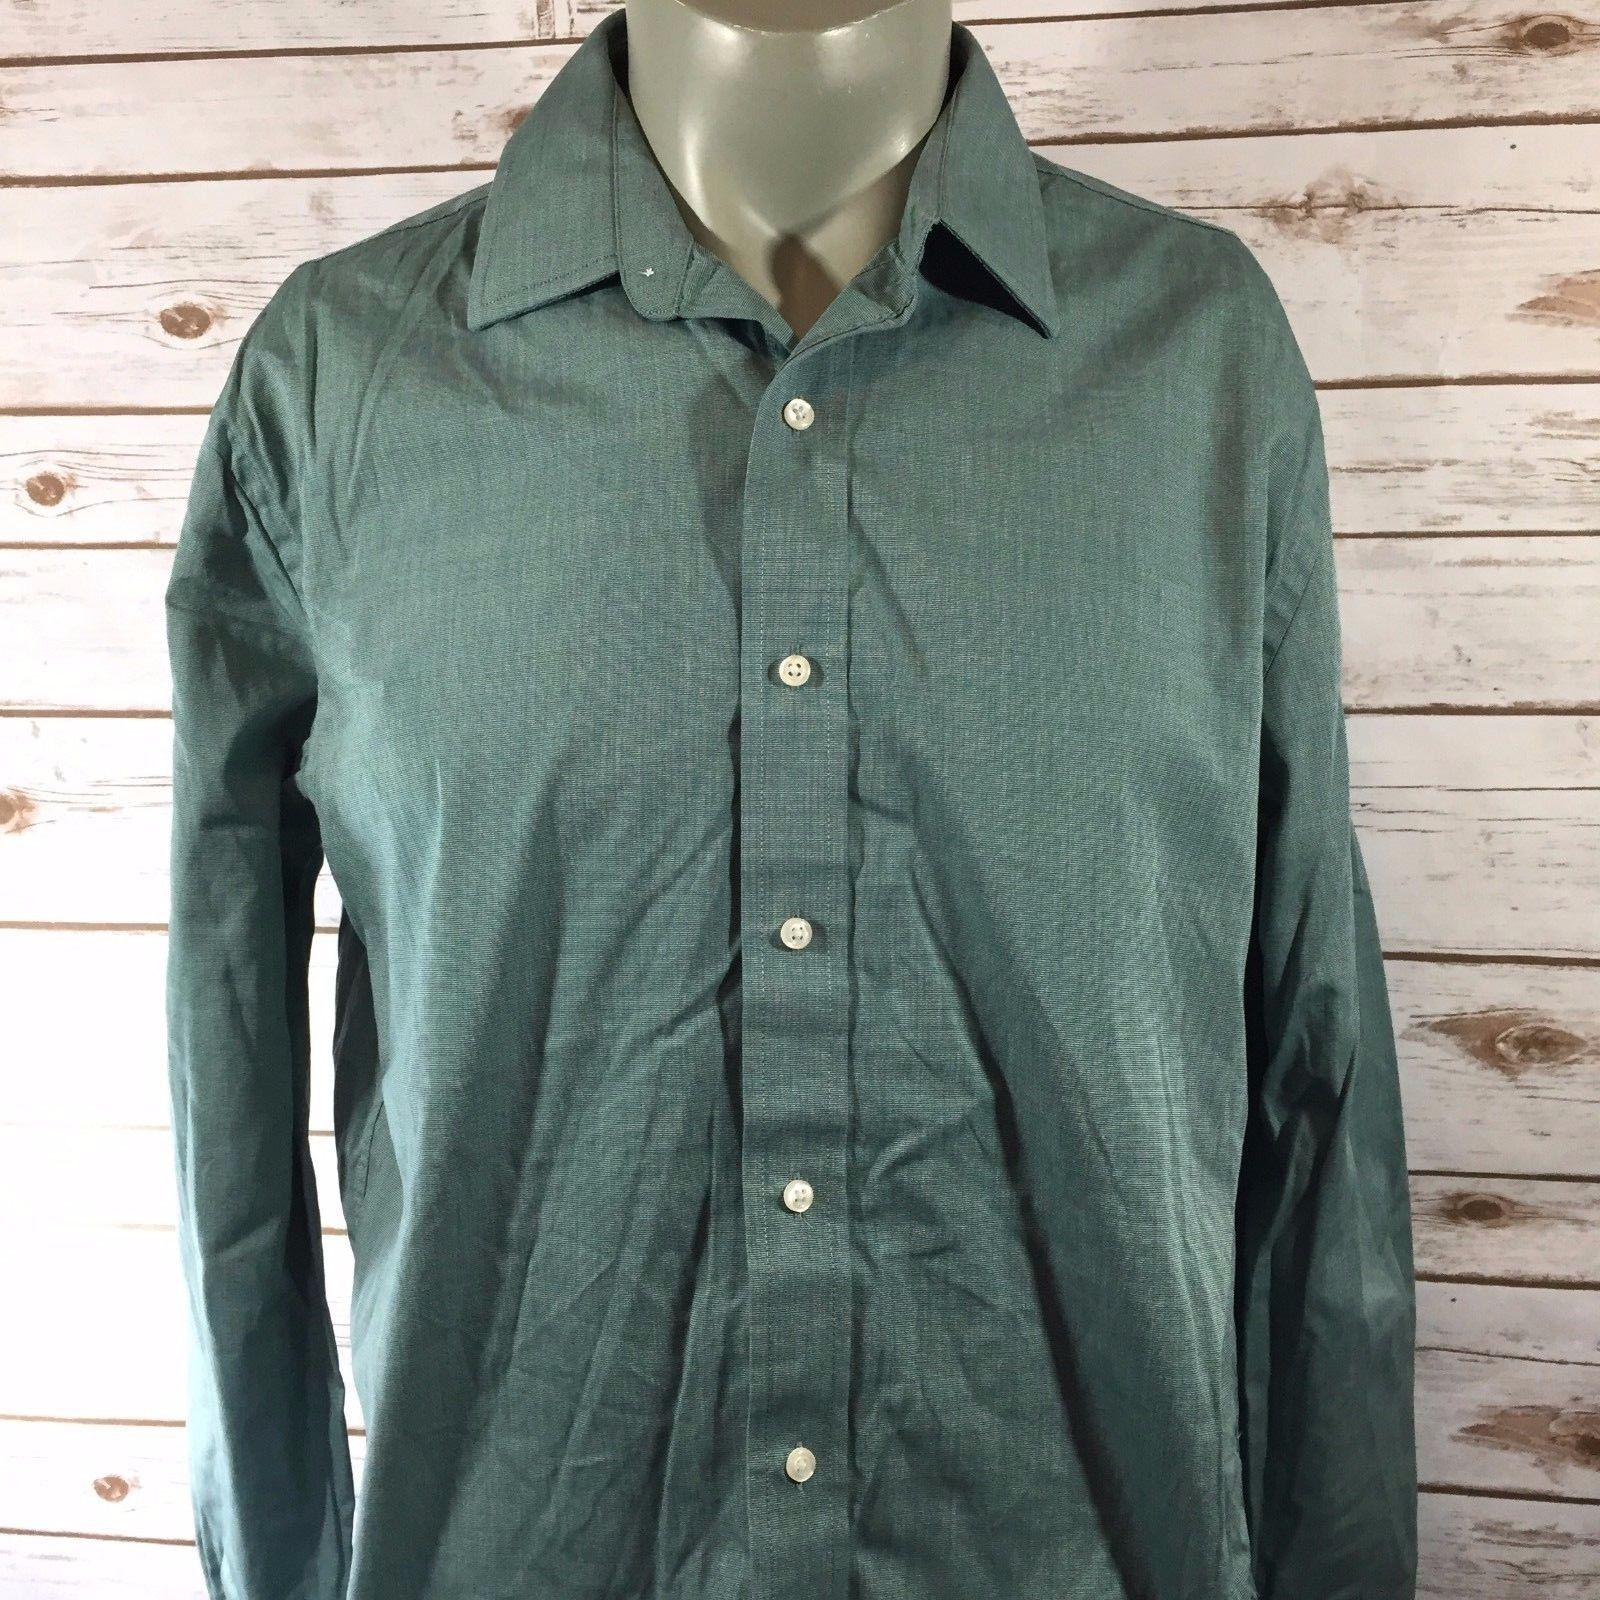 fcf57bf1 57. 57. Previous. Tommy Hilfiger Mens Shirt Size 16 1/2 34 35 Green Long  Sleeve Button Front